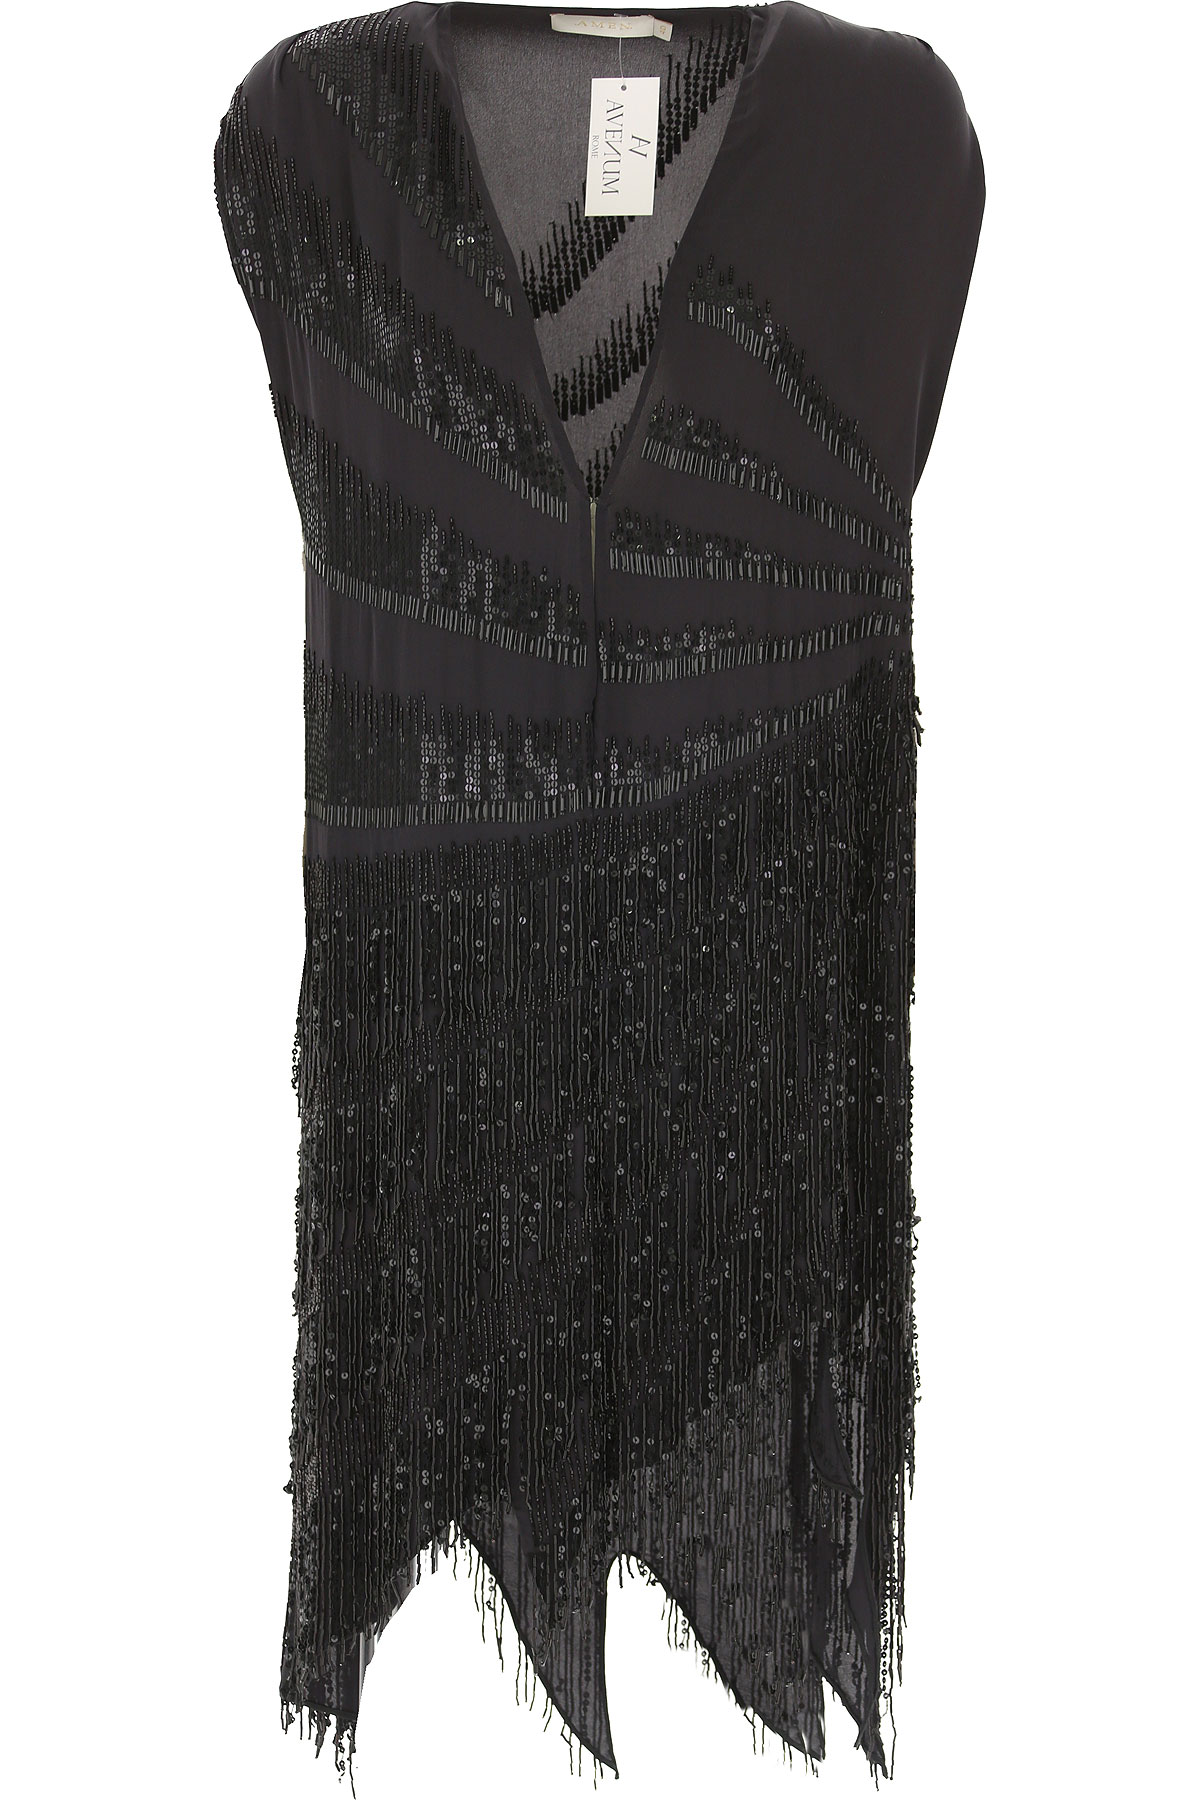 Image of Amen Dress for Women, Evening Cocktail Party, Black, Silk, 2017, 4 6